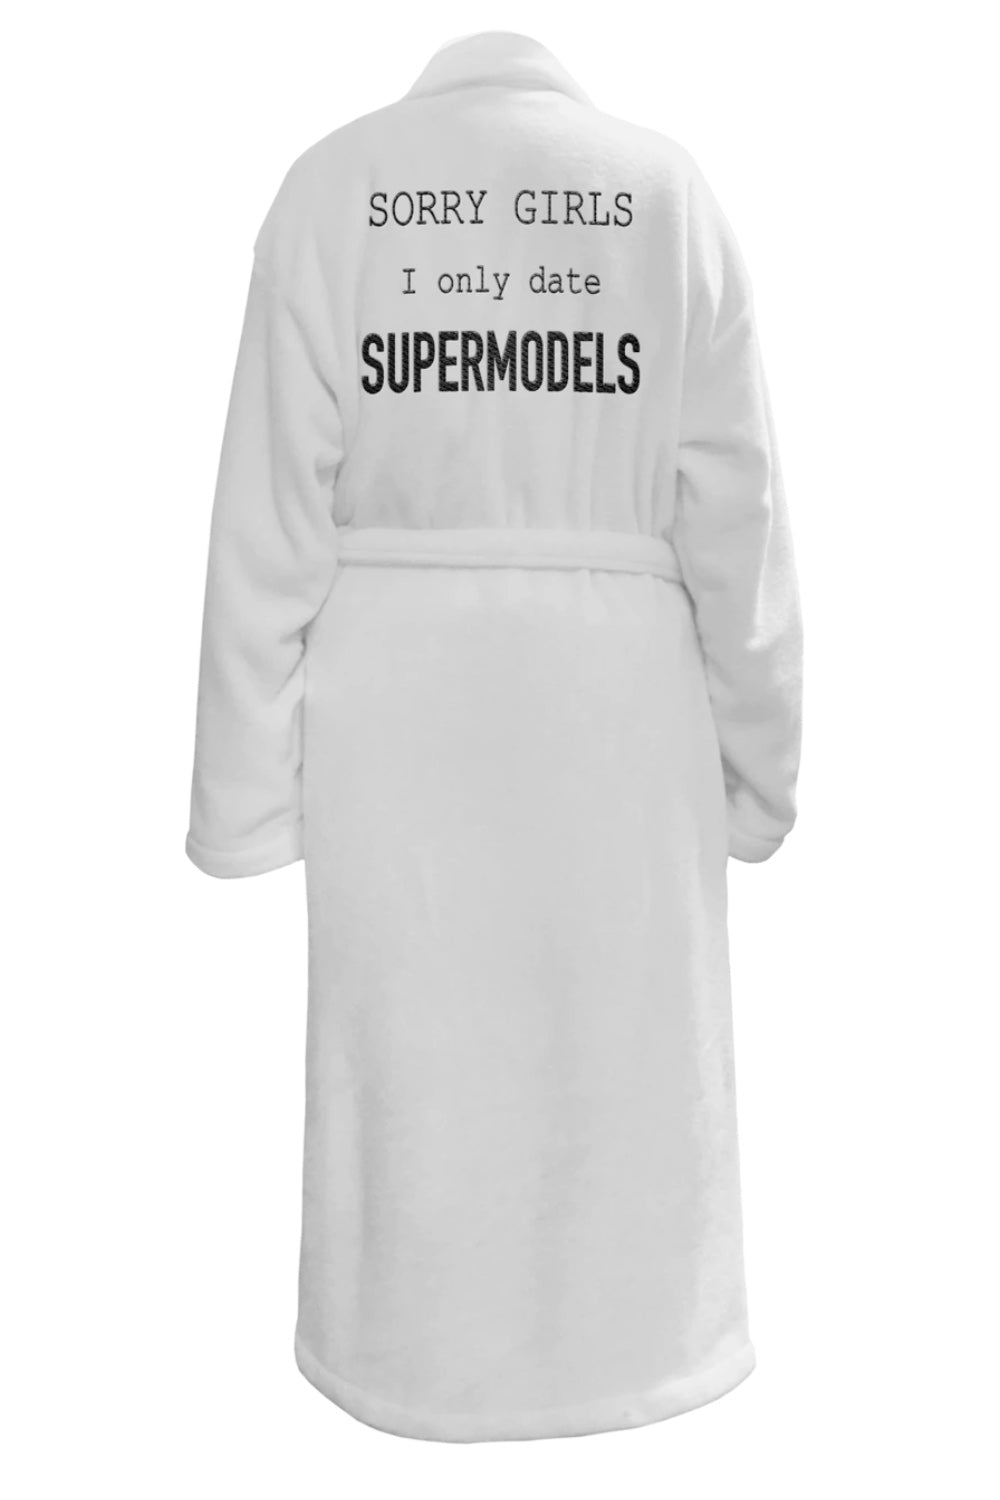 LUXE PLUSH ROBE - Sorry Girls I Only Date Supermodels